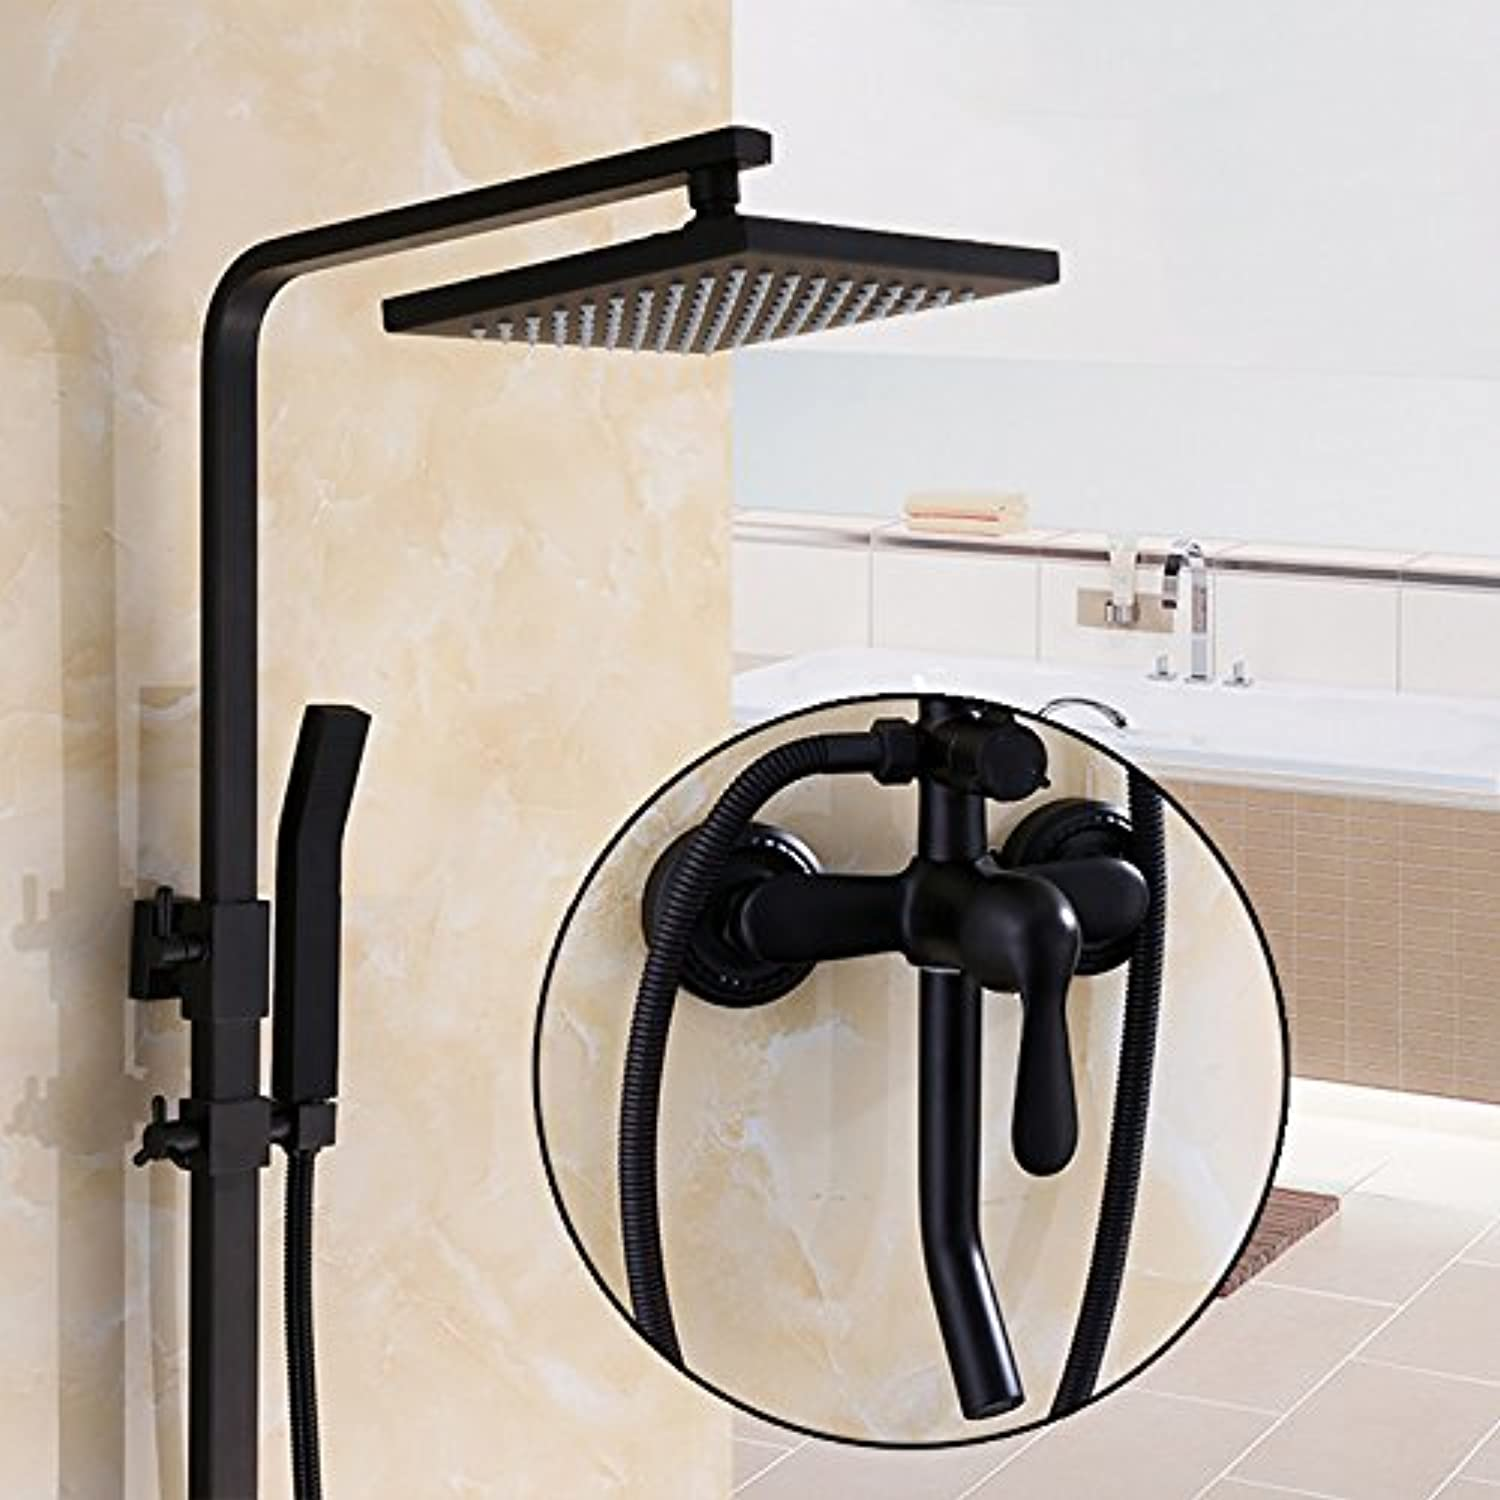 GFEI European style black shower head set   Antique bathroom, hot and cold thickening square shower head   all brass main faucet,E